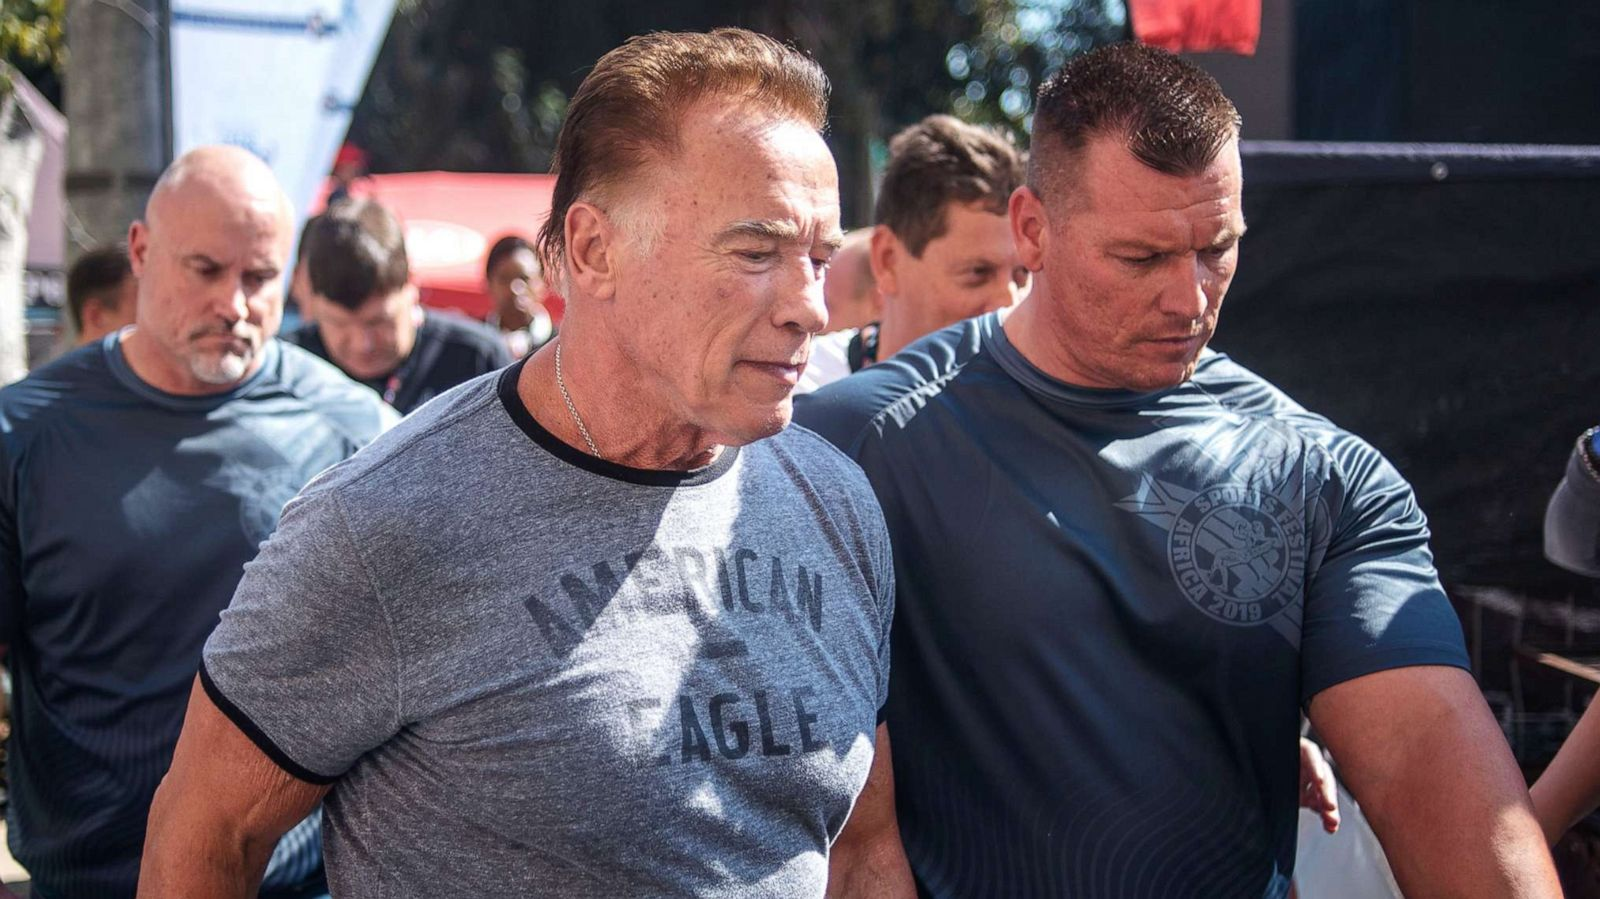 Arnold Schwarzenegger Assaulted At South African Sports Event Abc News